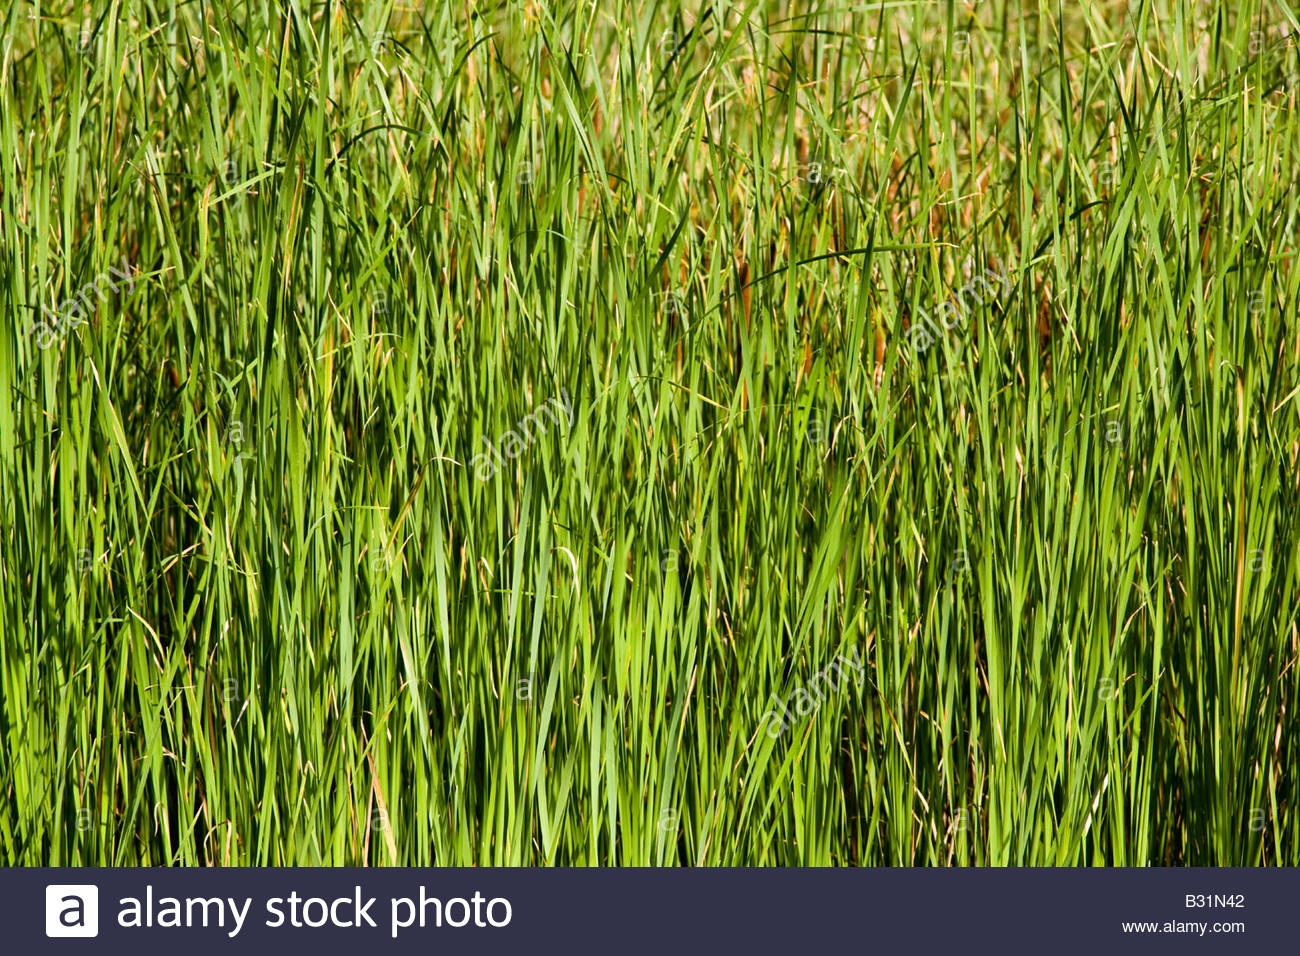 Reeds on edge of pond in Morningside Park in Toronto Ontario Canada - Stock Image